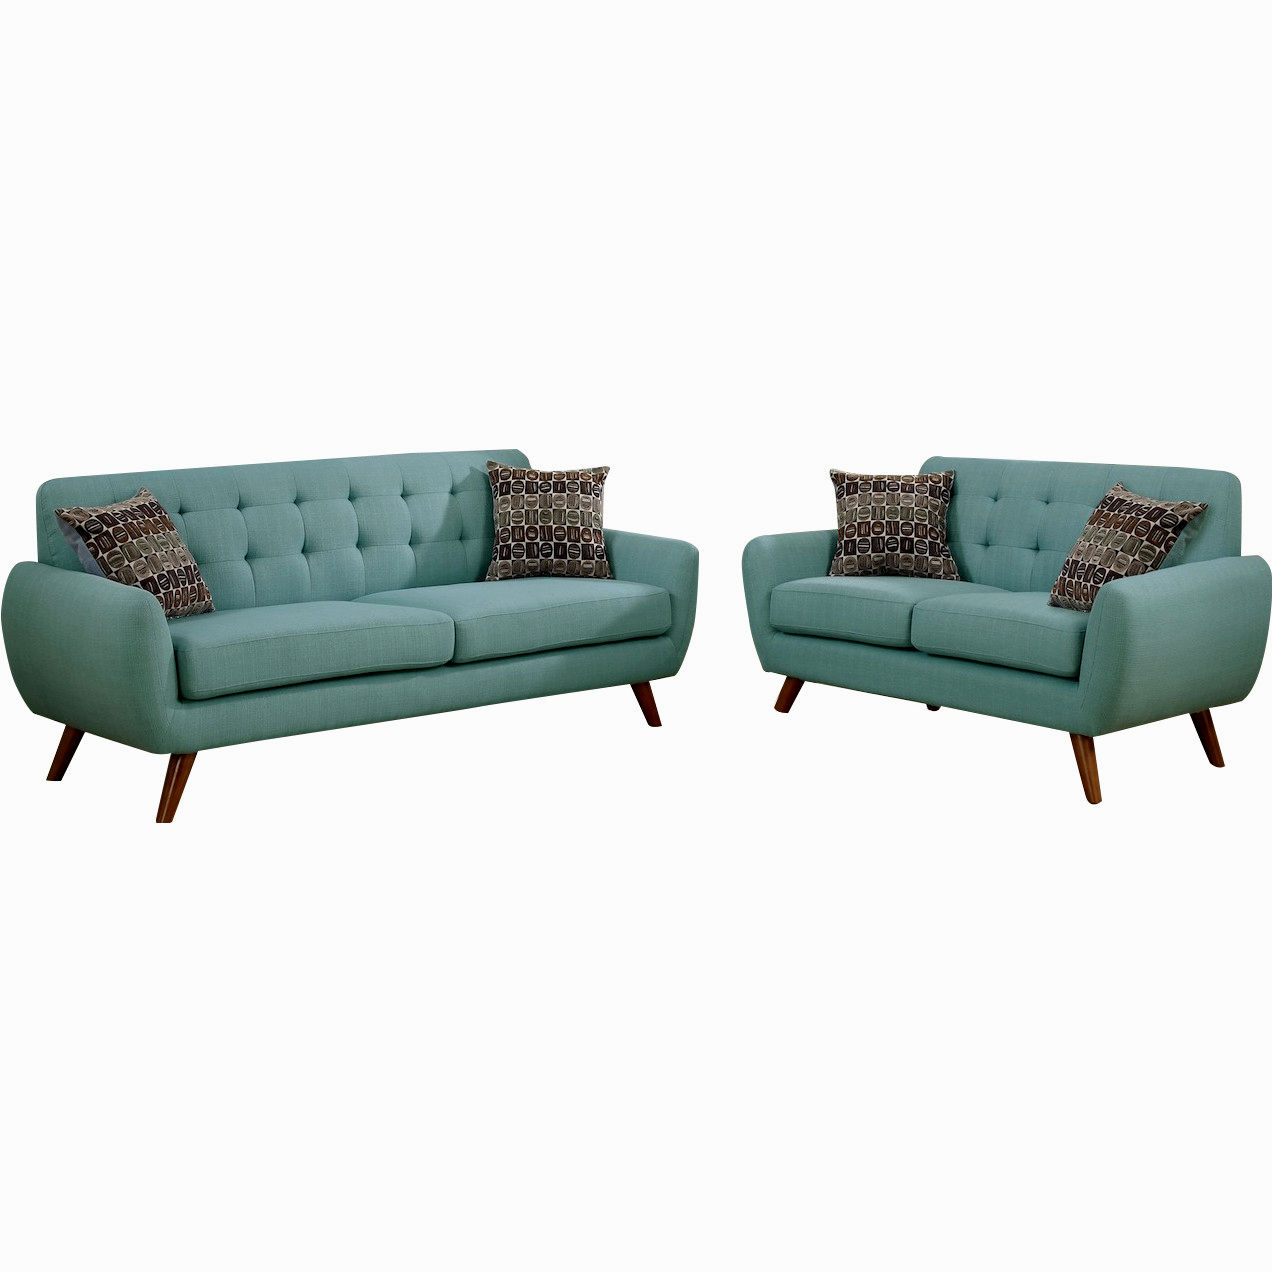 contemporary loveseat sofa bed décor-Wonderful Loveseat sofa Bed Decoration